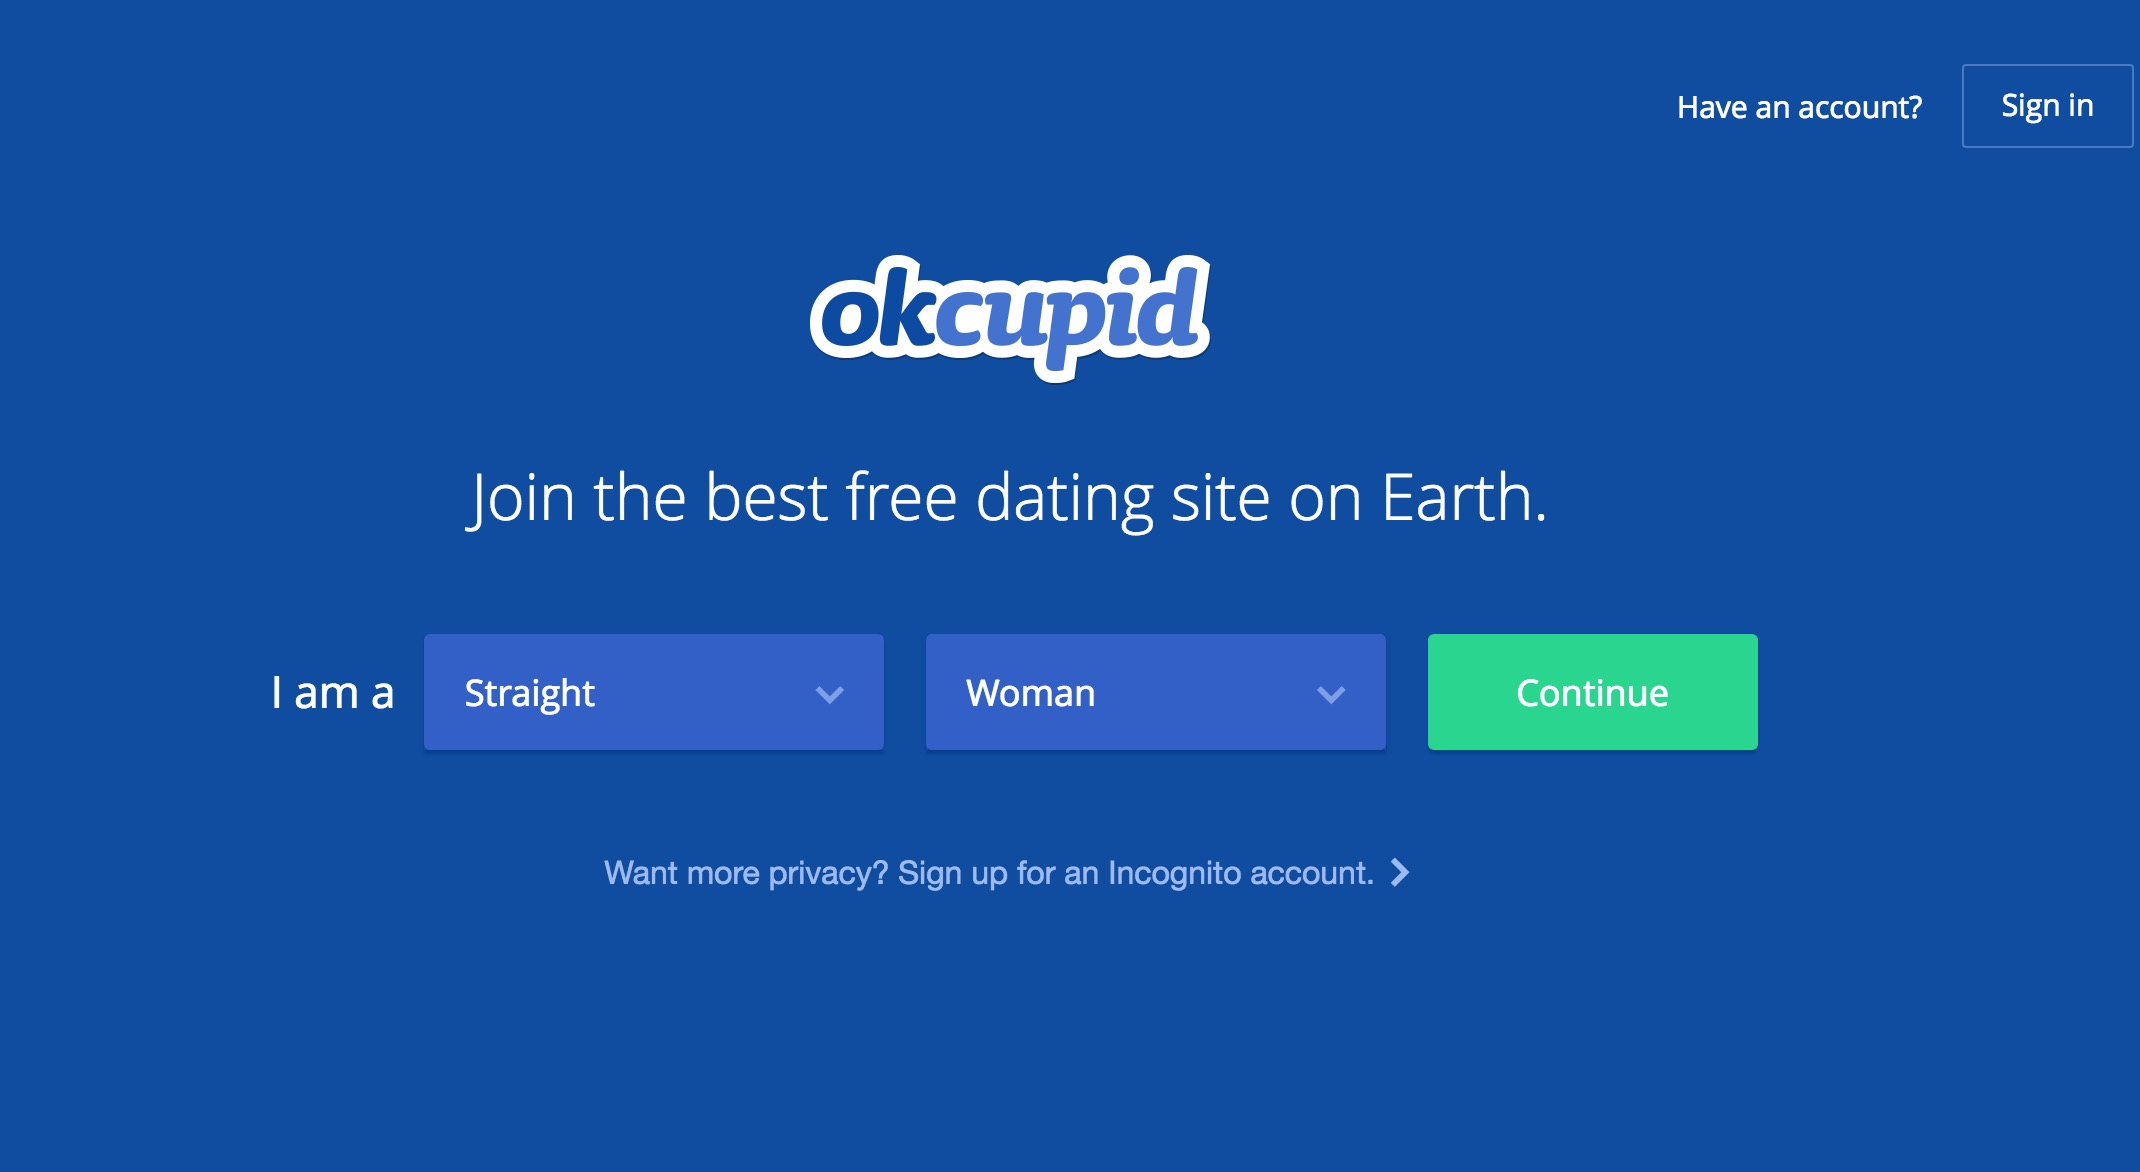 9 Best Free Online Dating Sites